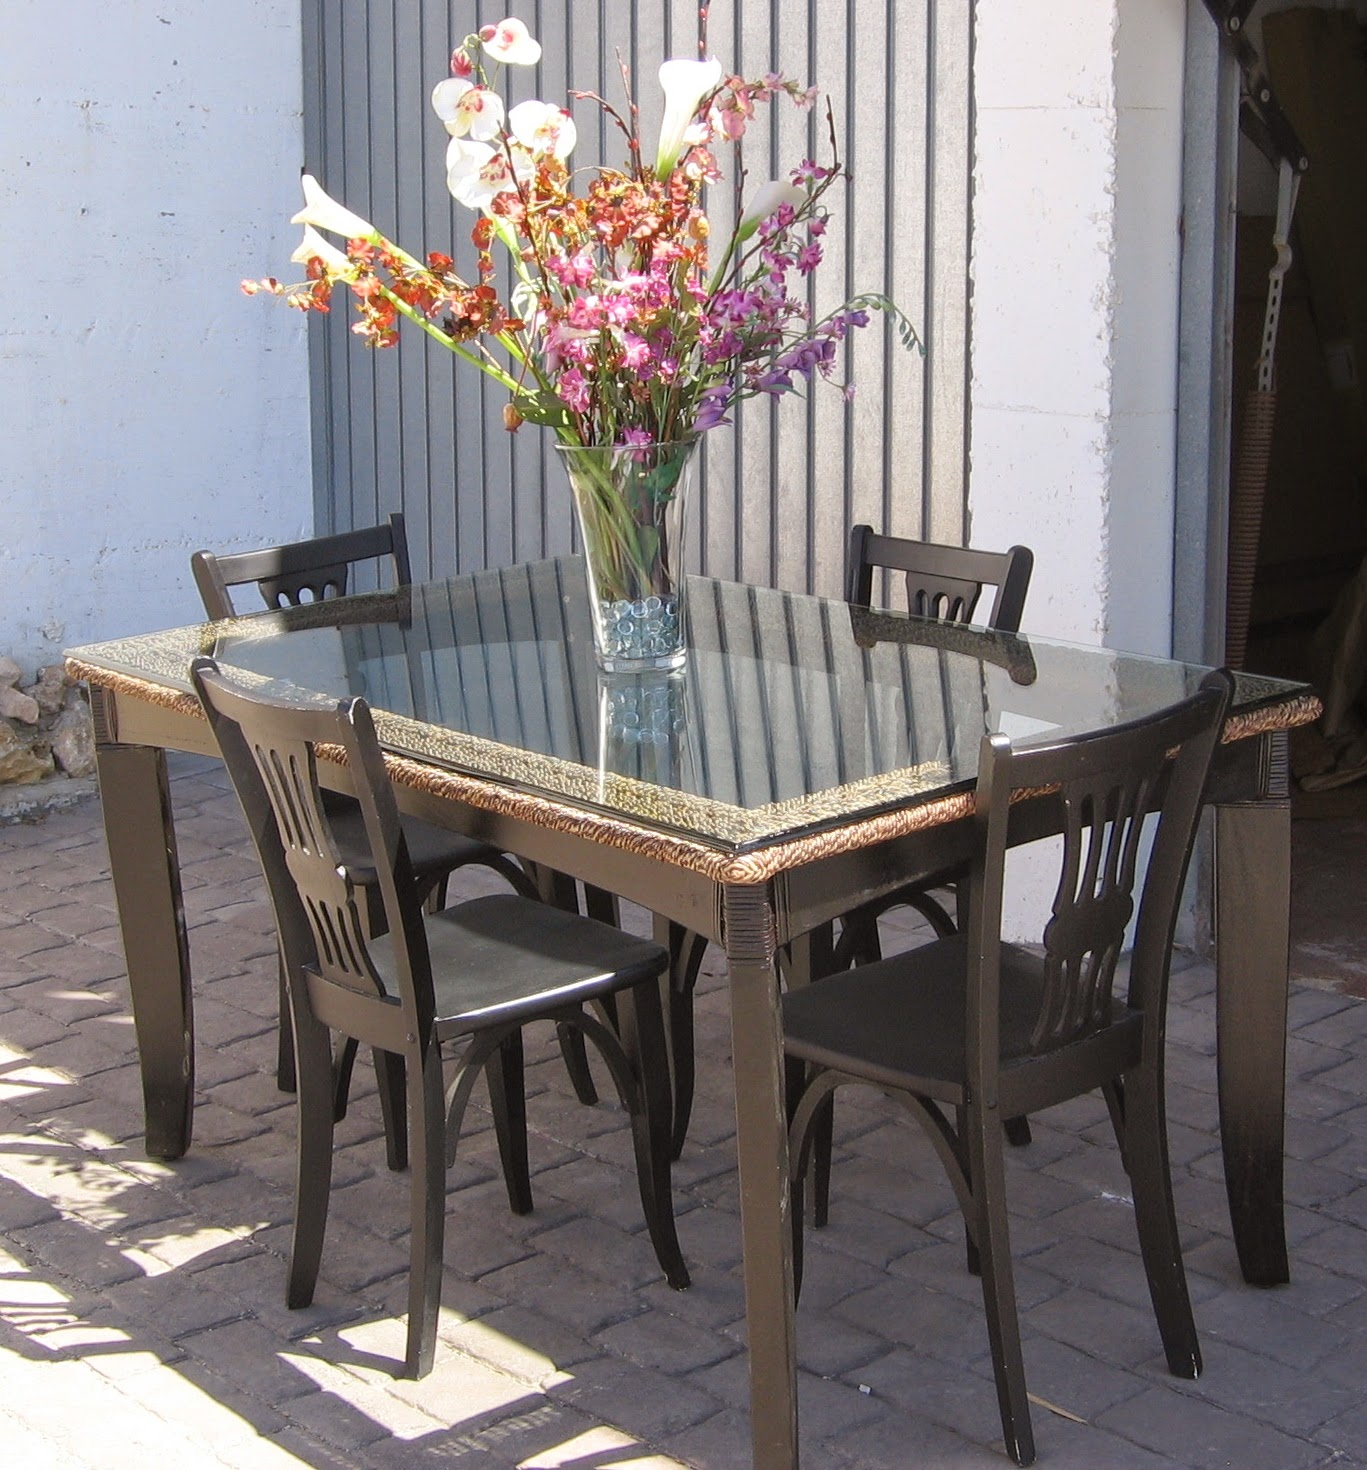 Dining Set For Sale: Digame: For Sale: Chairs & Dining Set & Prints